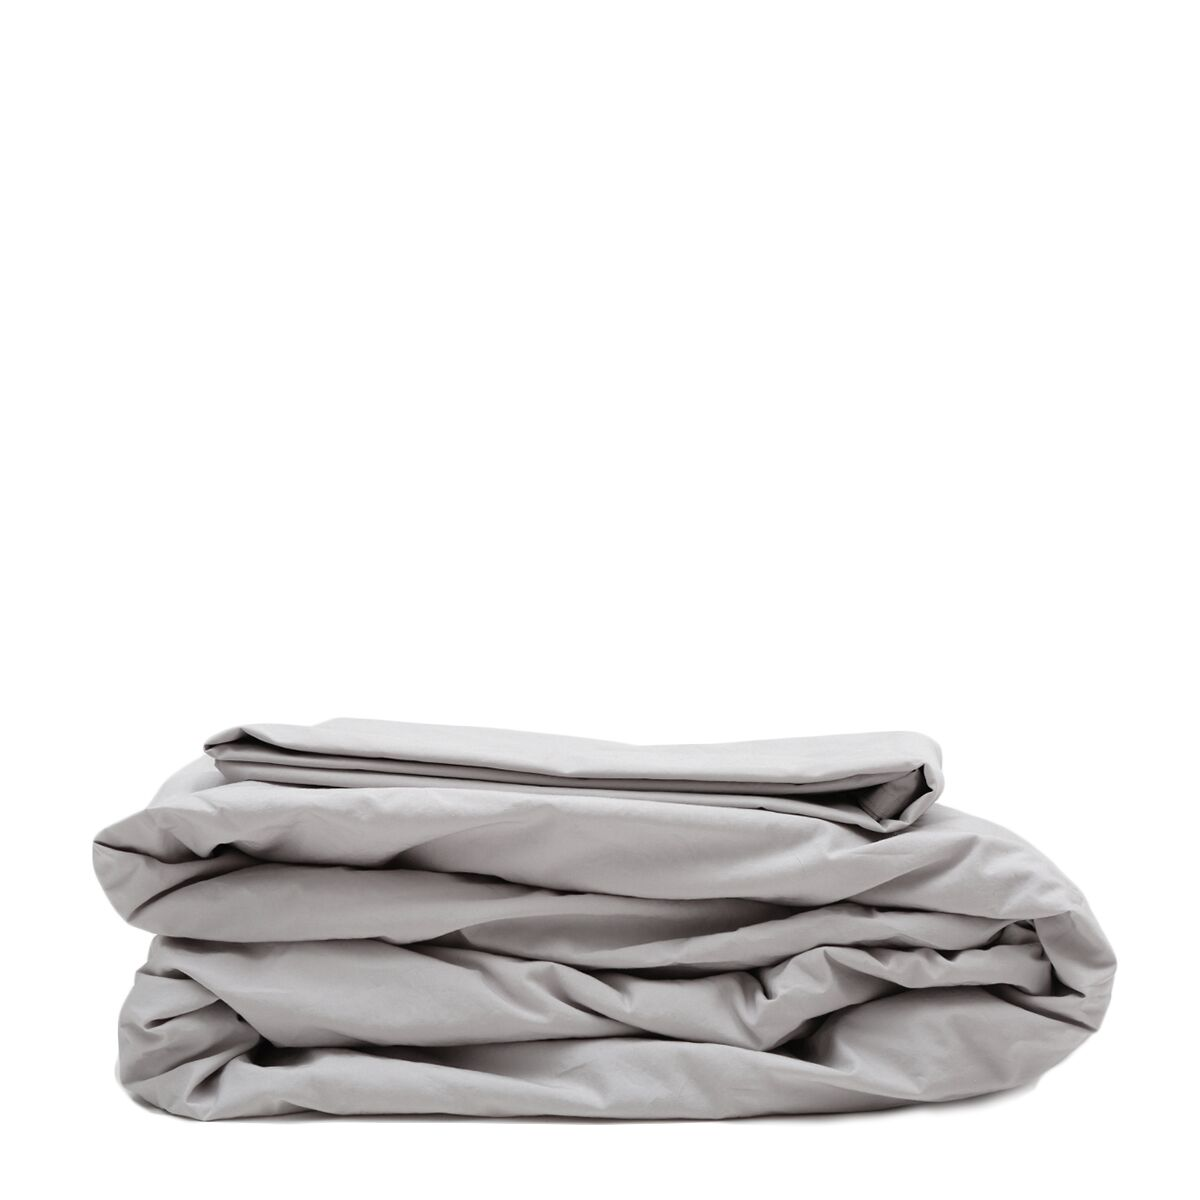 300 Thread Count Cotton Percale Sheet Set Size: King, Color: Light Gray